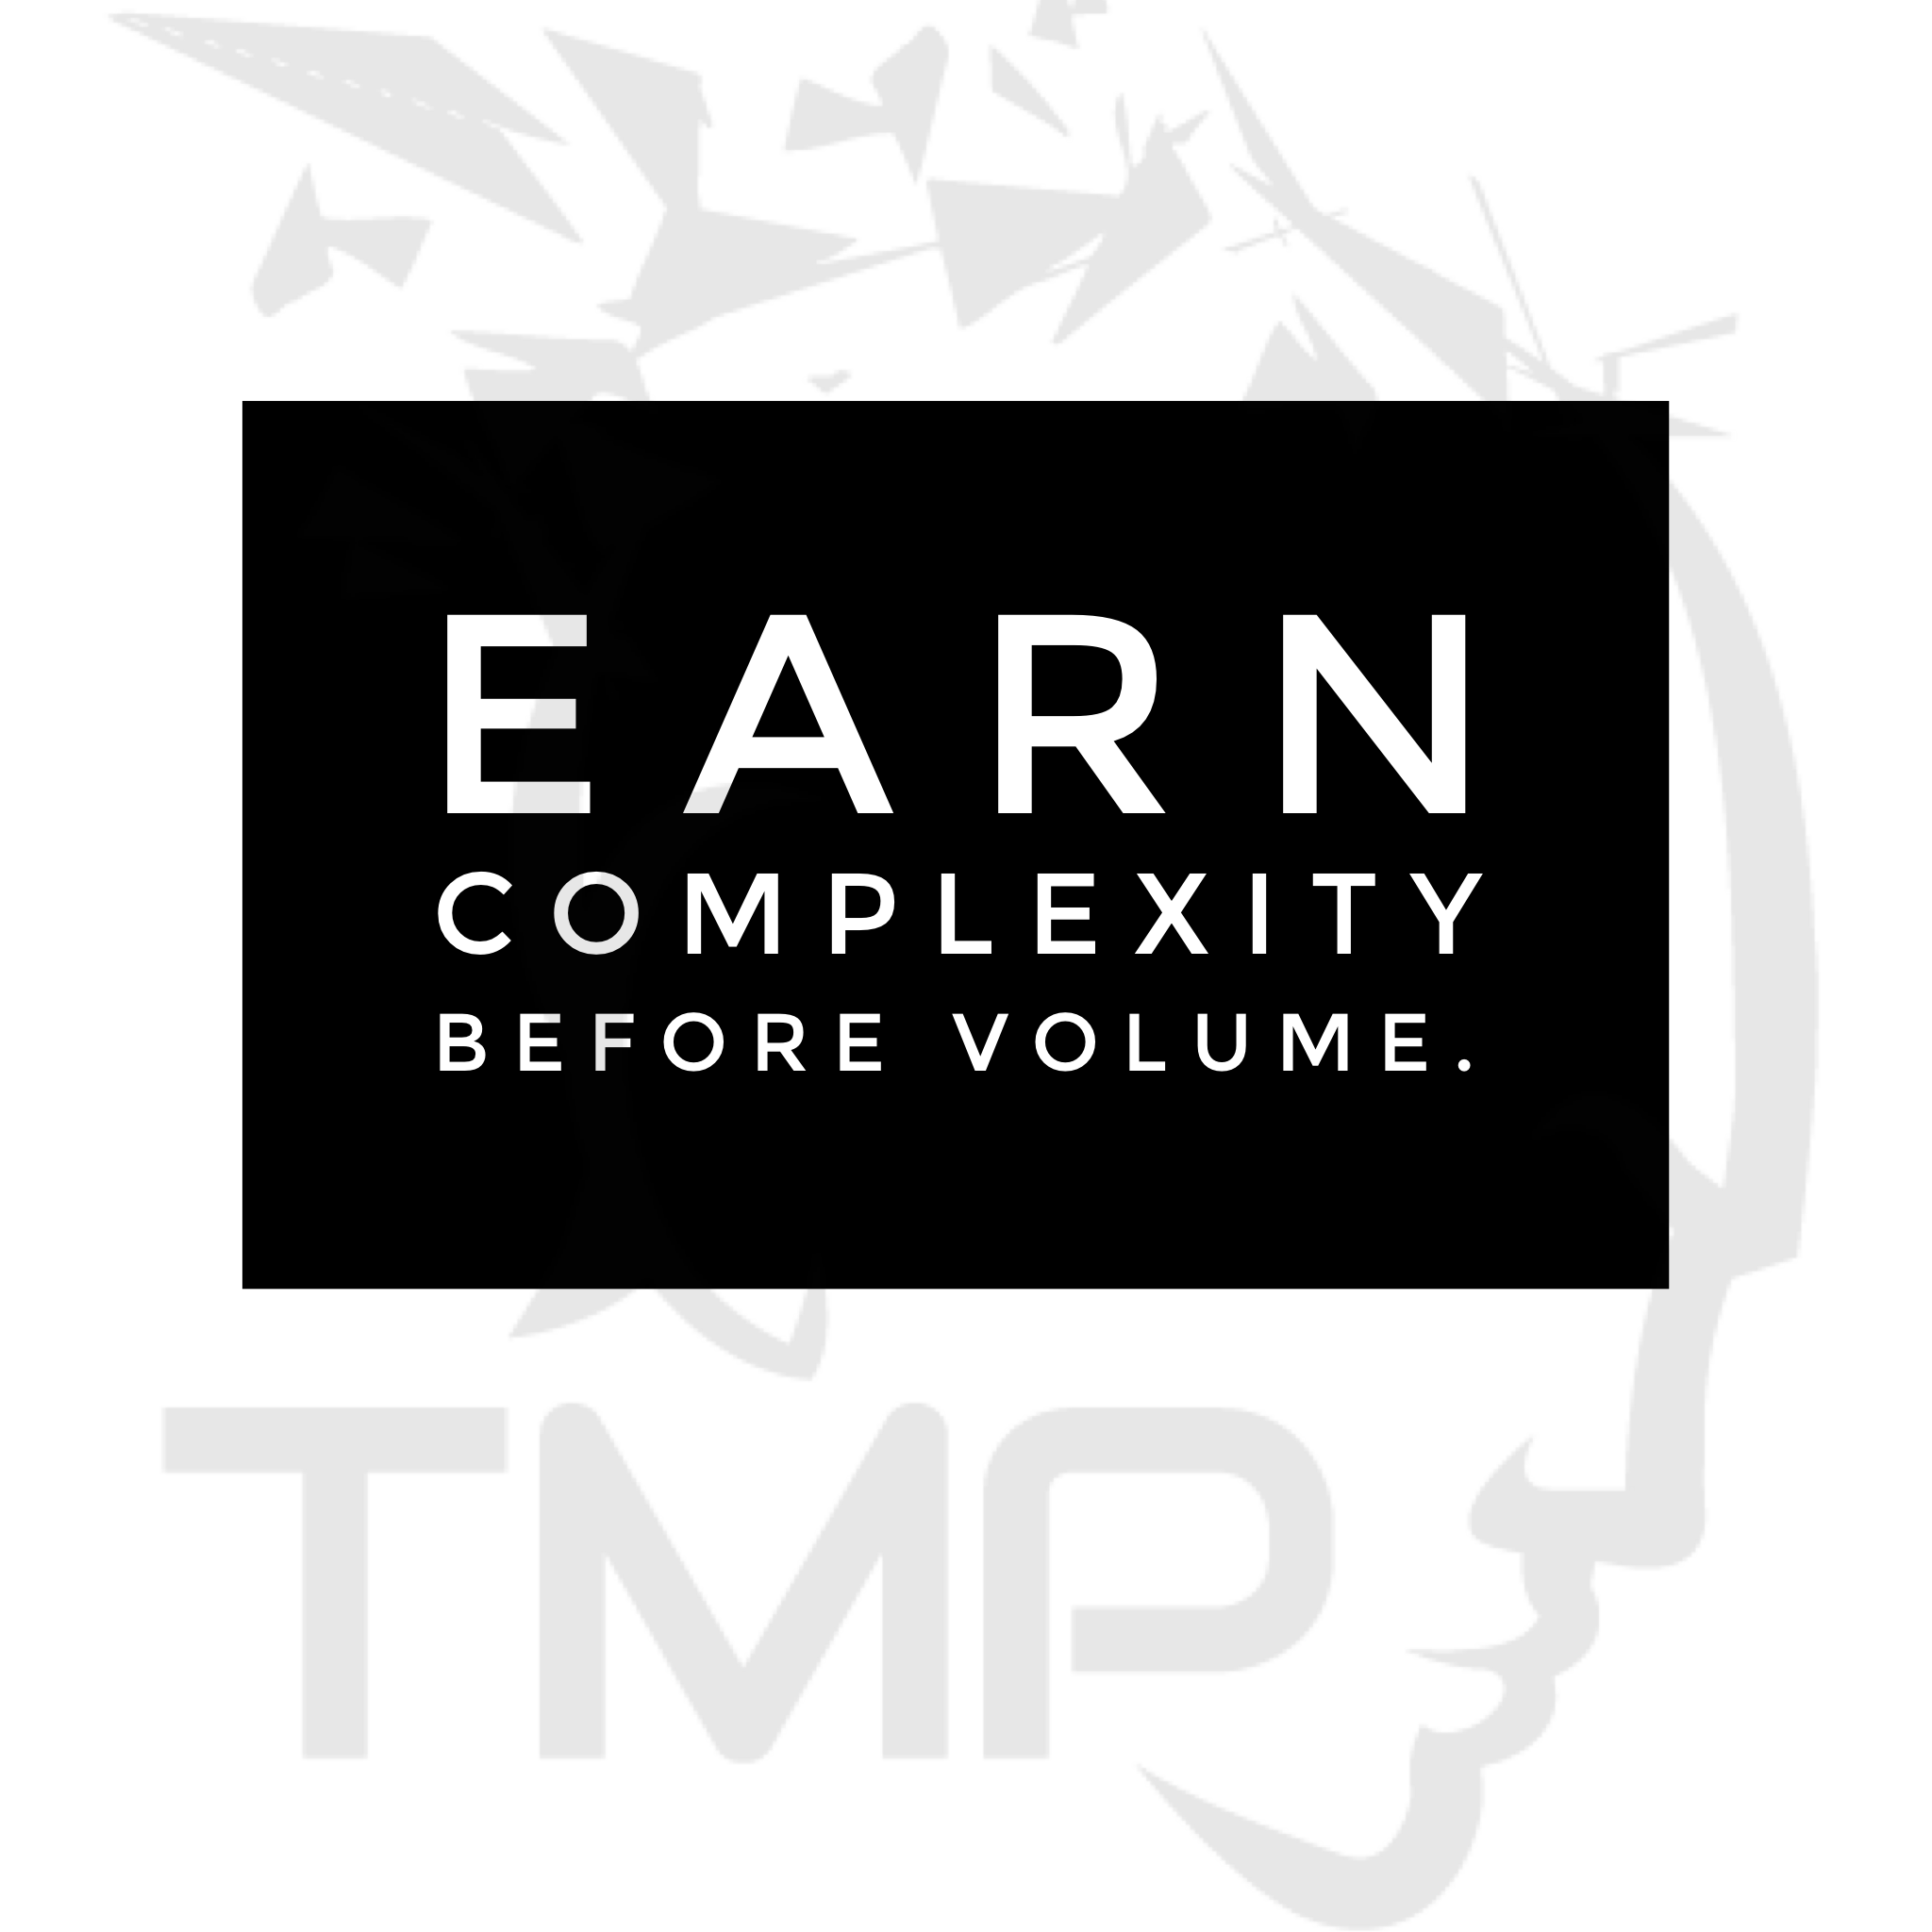 earn complexity before volume